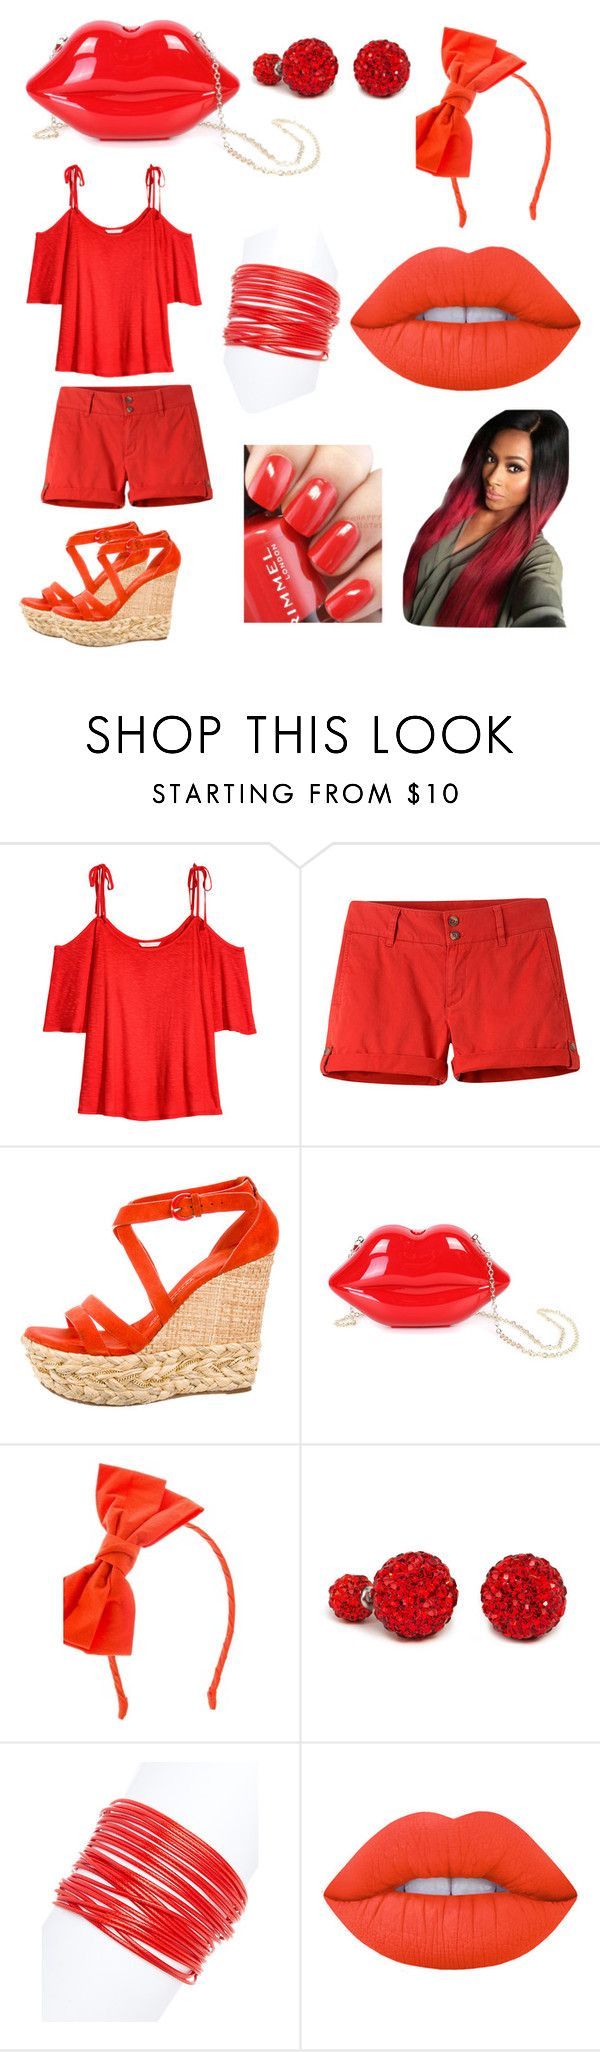 """15"" by cristina-vanau on Polyvore featuring Mountain Khakis, Casadei, WithChic, Johnny Loves Rosie, ZENZii, Lime Crime and Rimmel"